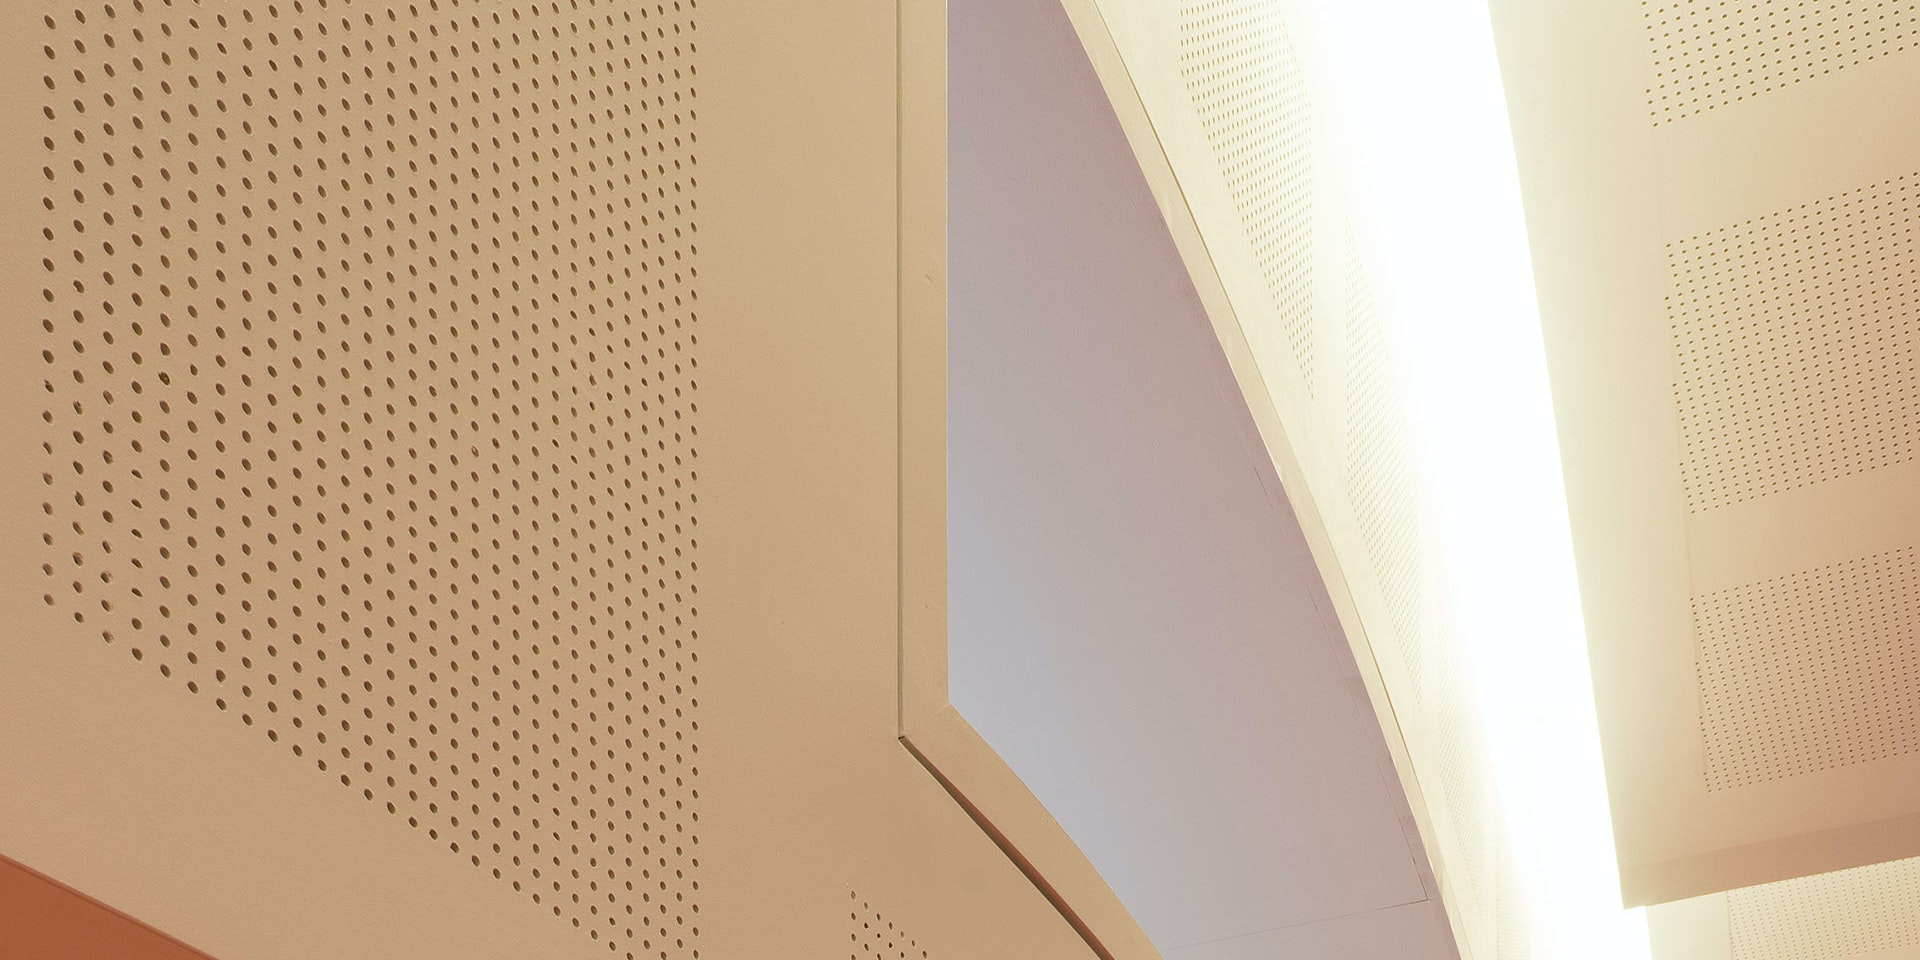 Primo X2 LED strip in application, installed in the Swinburne University AMC Building Lecture Theatre. Multiple soffits create a wave-like effect and double as an indirect lighting source.